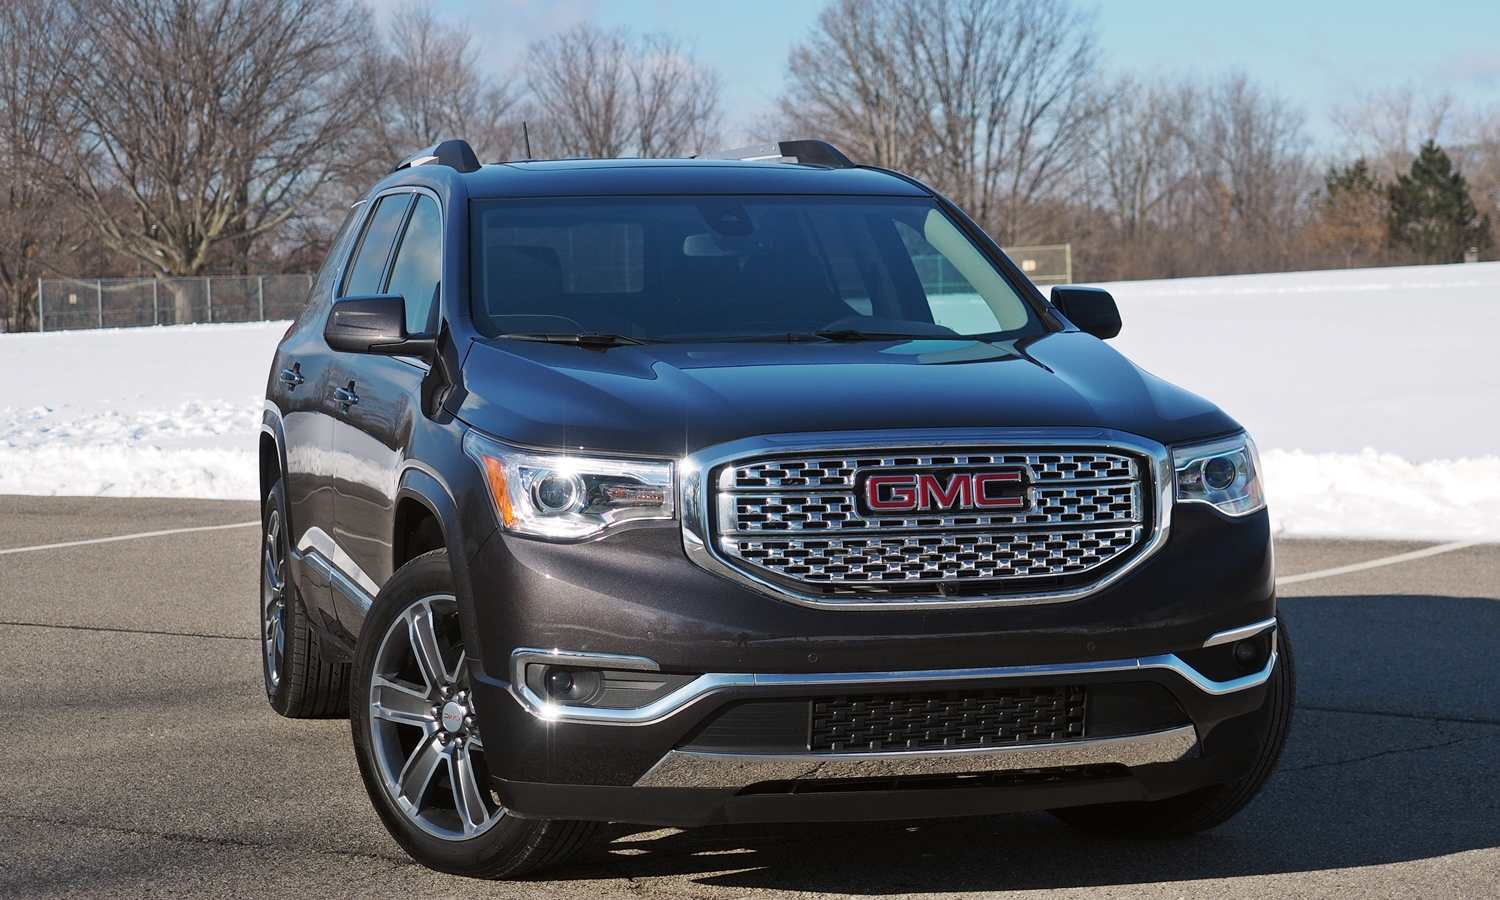 GMC Acadia Photos: 2017 GMC Acadia front angle view 3